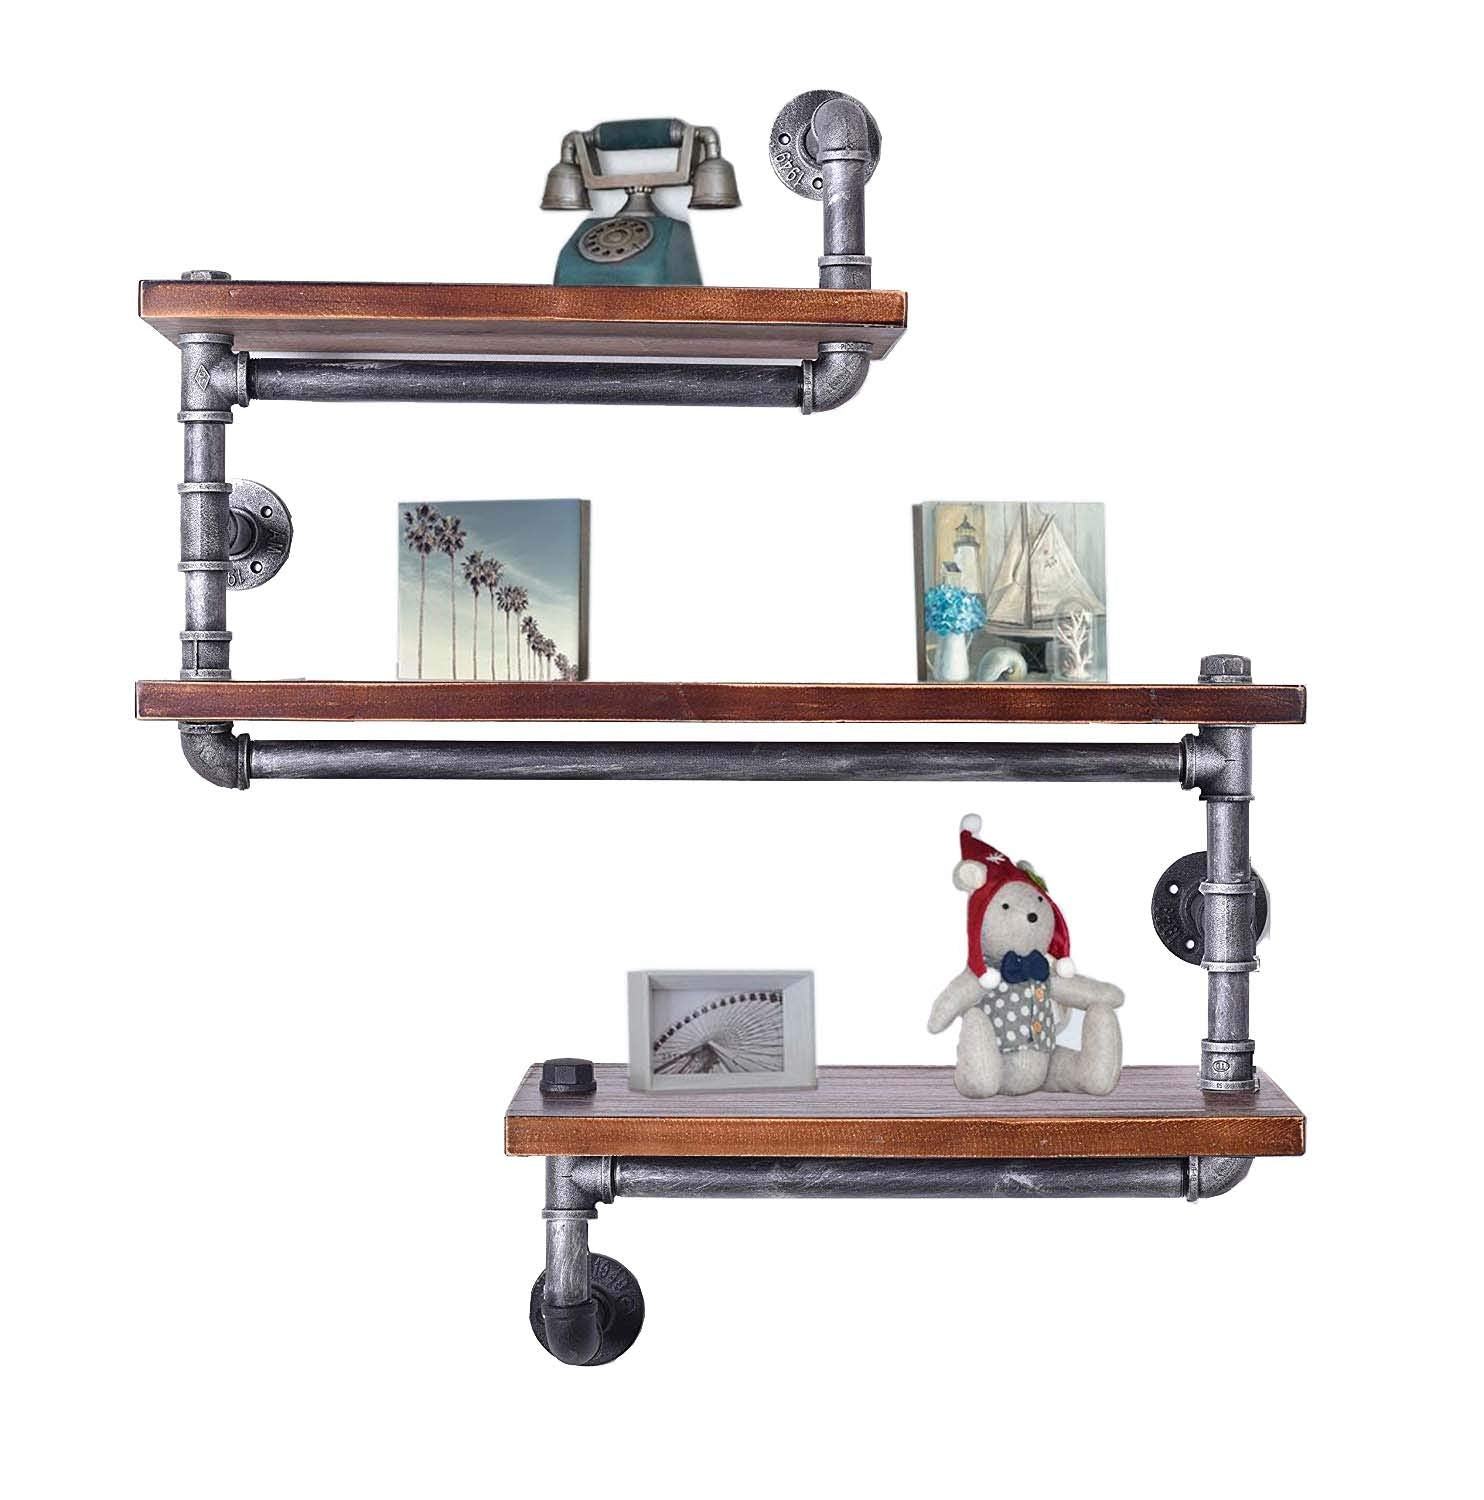 Diwhy Industrial Pipe Shelving Bookshelf Rustic Modern Wood Ladder Pipe Wall Shelf 3 Tiers Wrought IronPipe Design Bookshelf DIY Shelving(Dia 32mm,Weight:30lb) (Black Brush Silver Tube)